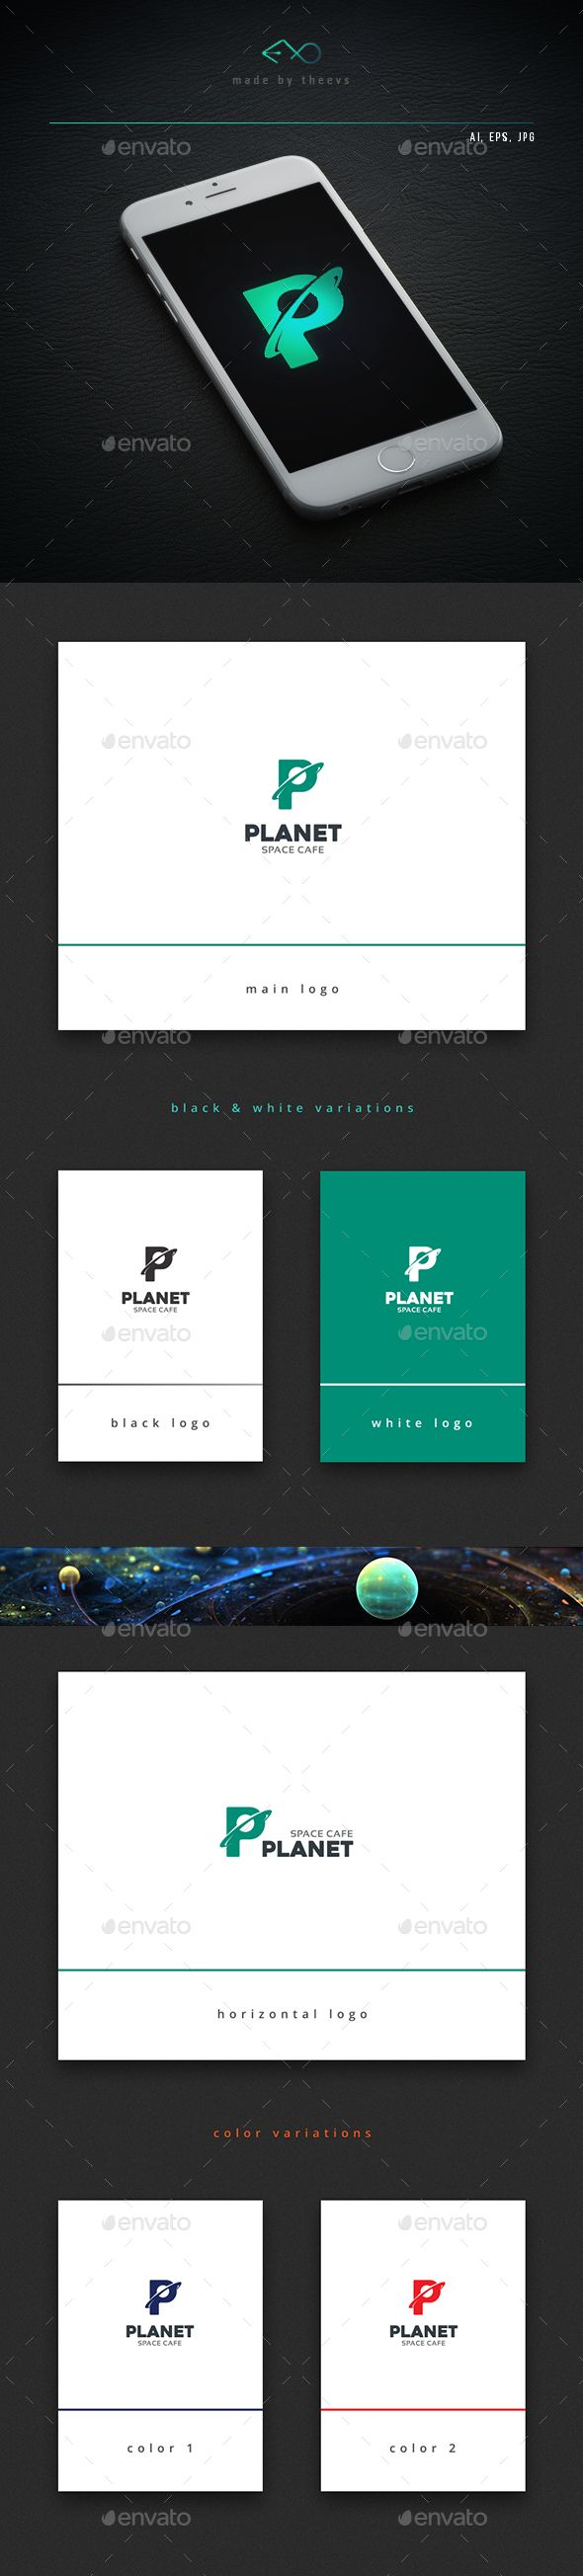 NEW PLANET VT LOGOS AND CERTIFICATE DESIGNN